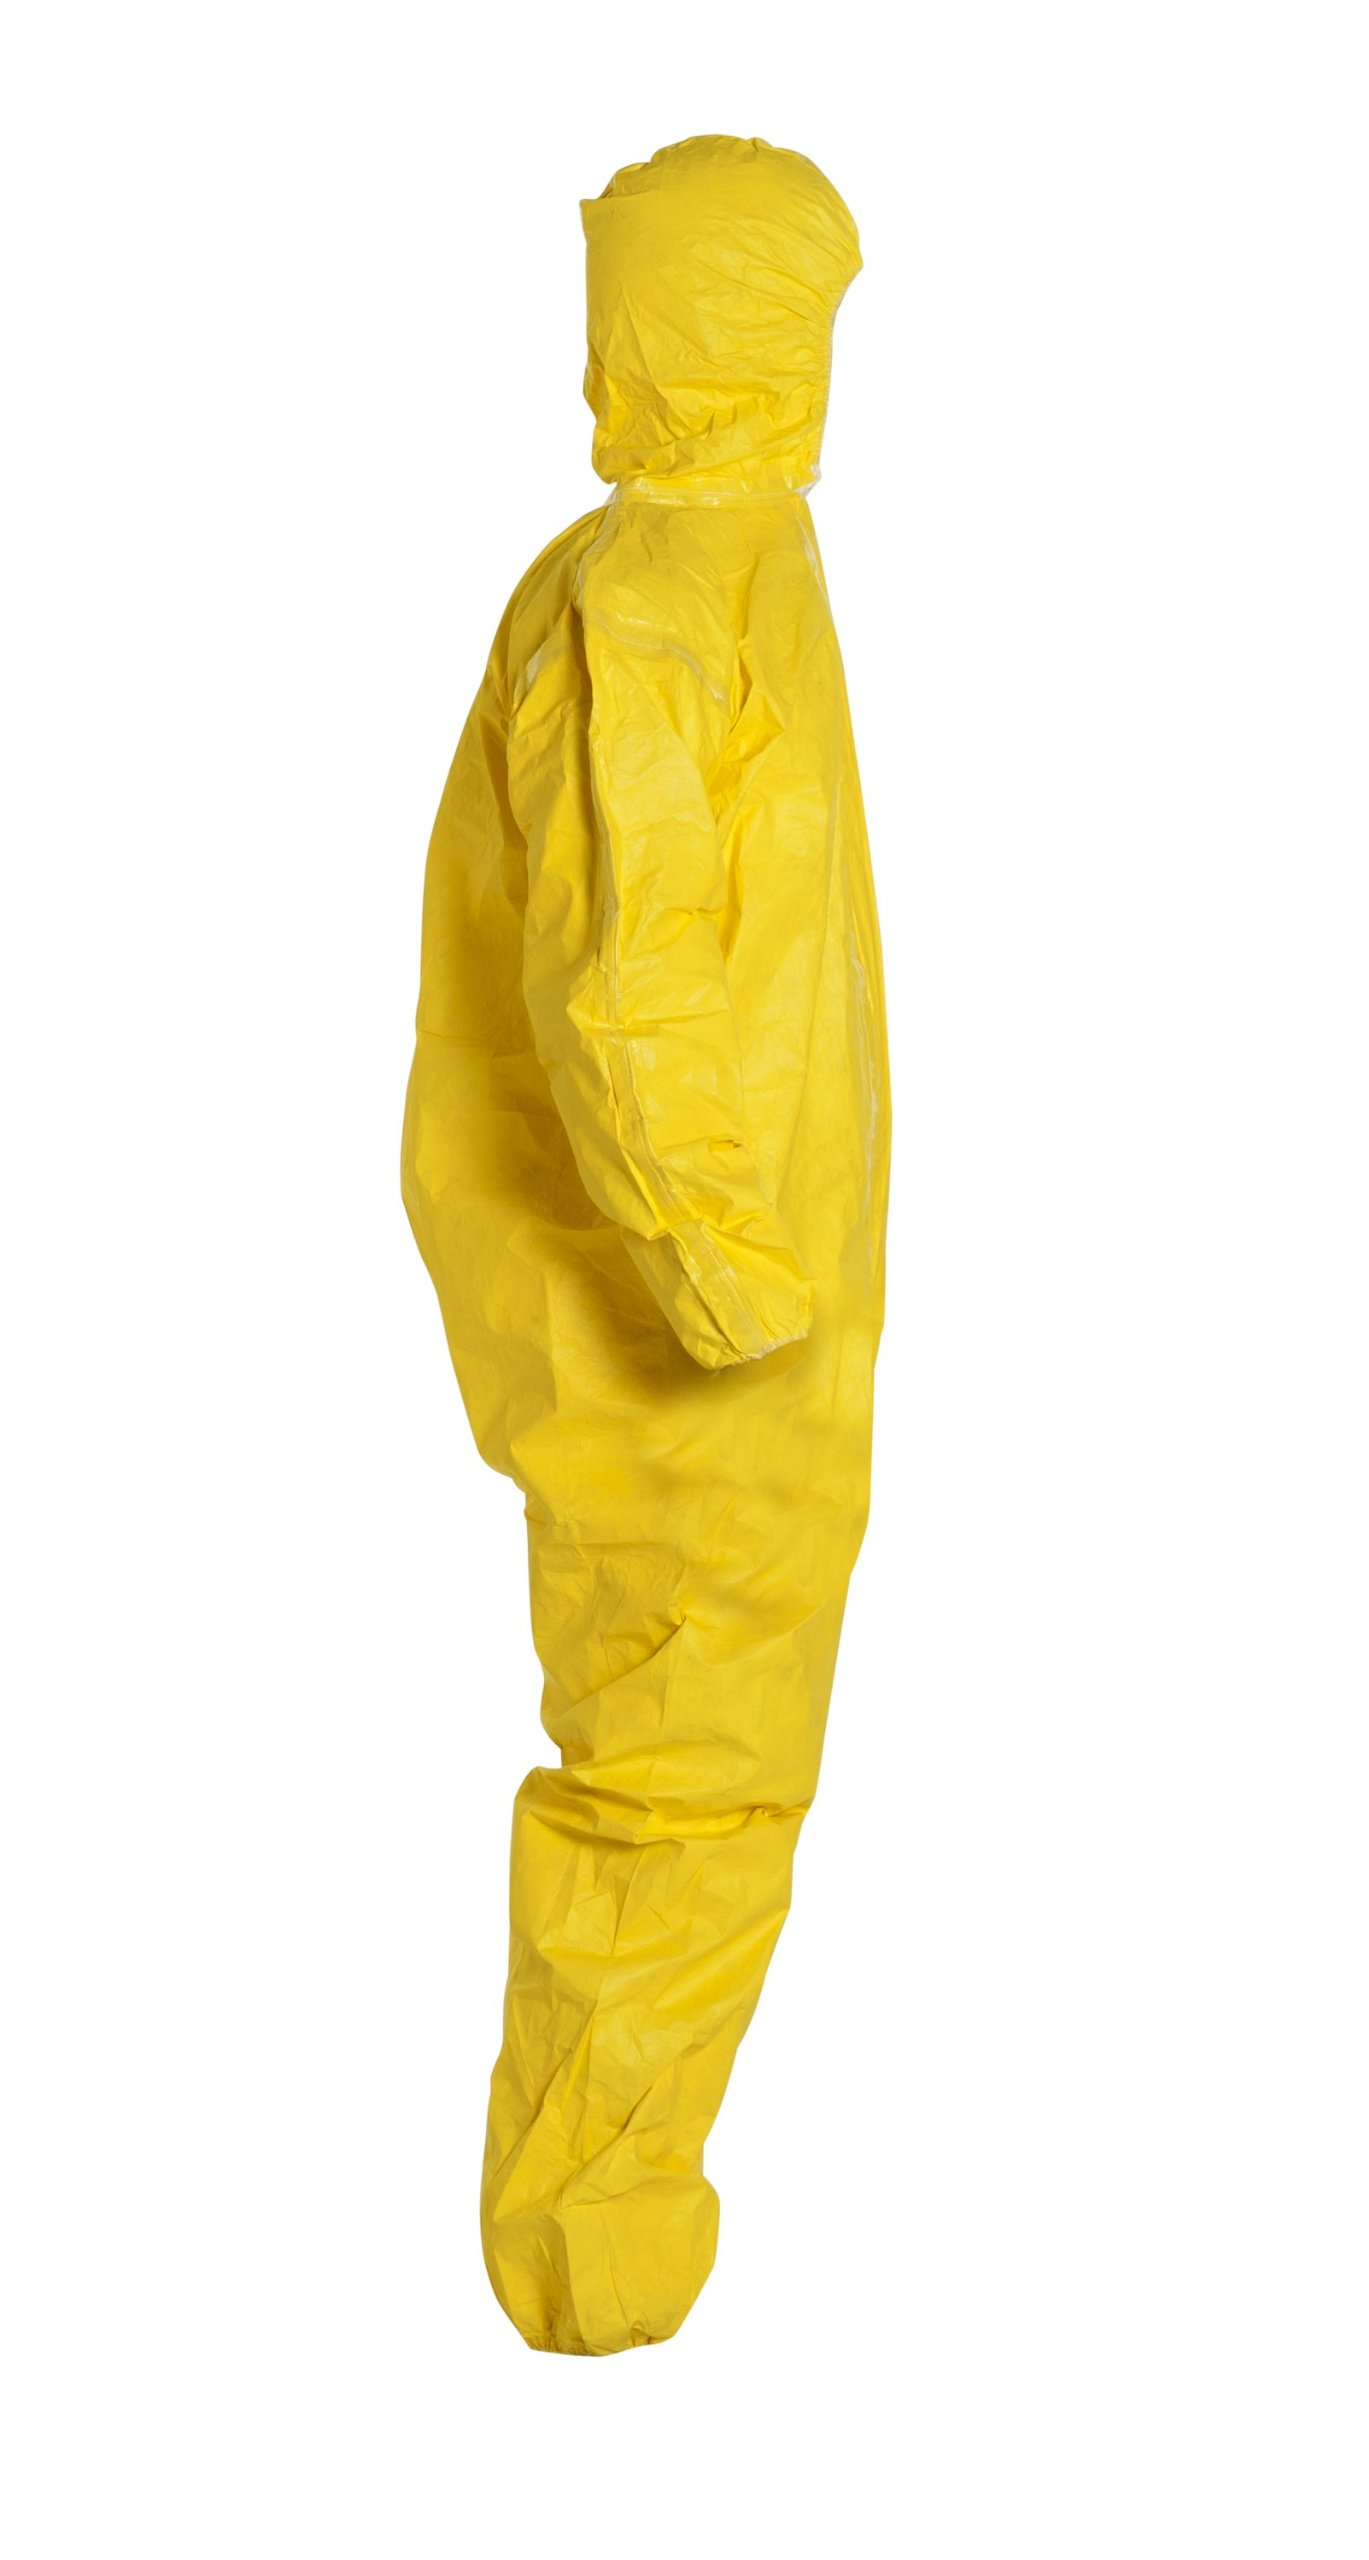 DuPont Tychem 2000 QC127S Disposable Chemical Resistant Coverall with Hood, Elastic Cuff and Serged Seams, Yellow, X-Large (Pack of 12) by DuPont (Image #3)